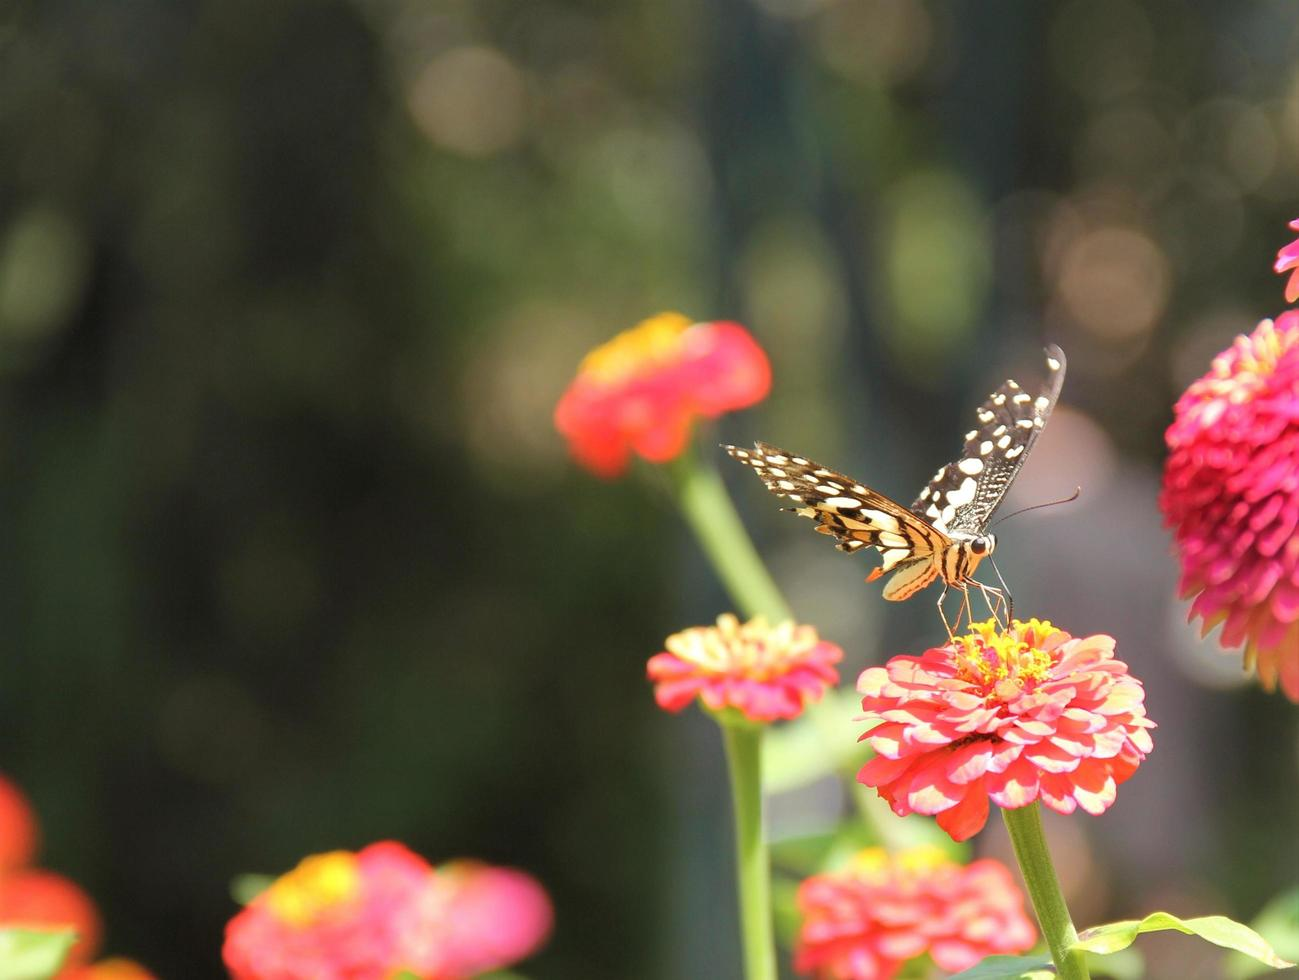 Red flowers and the butterfly photo